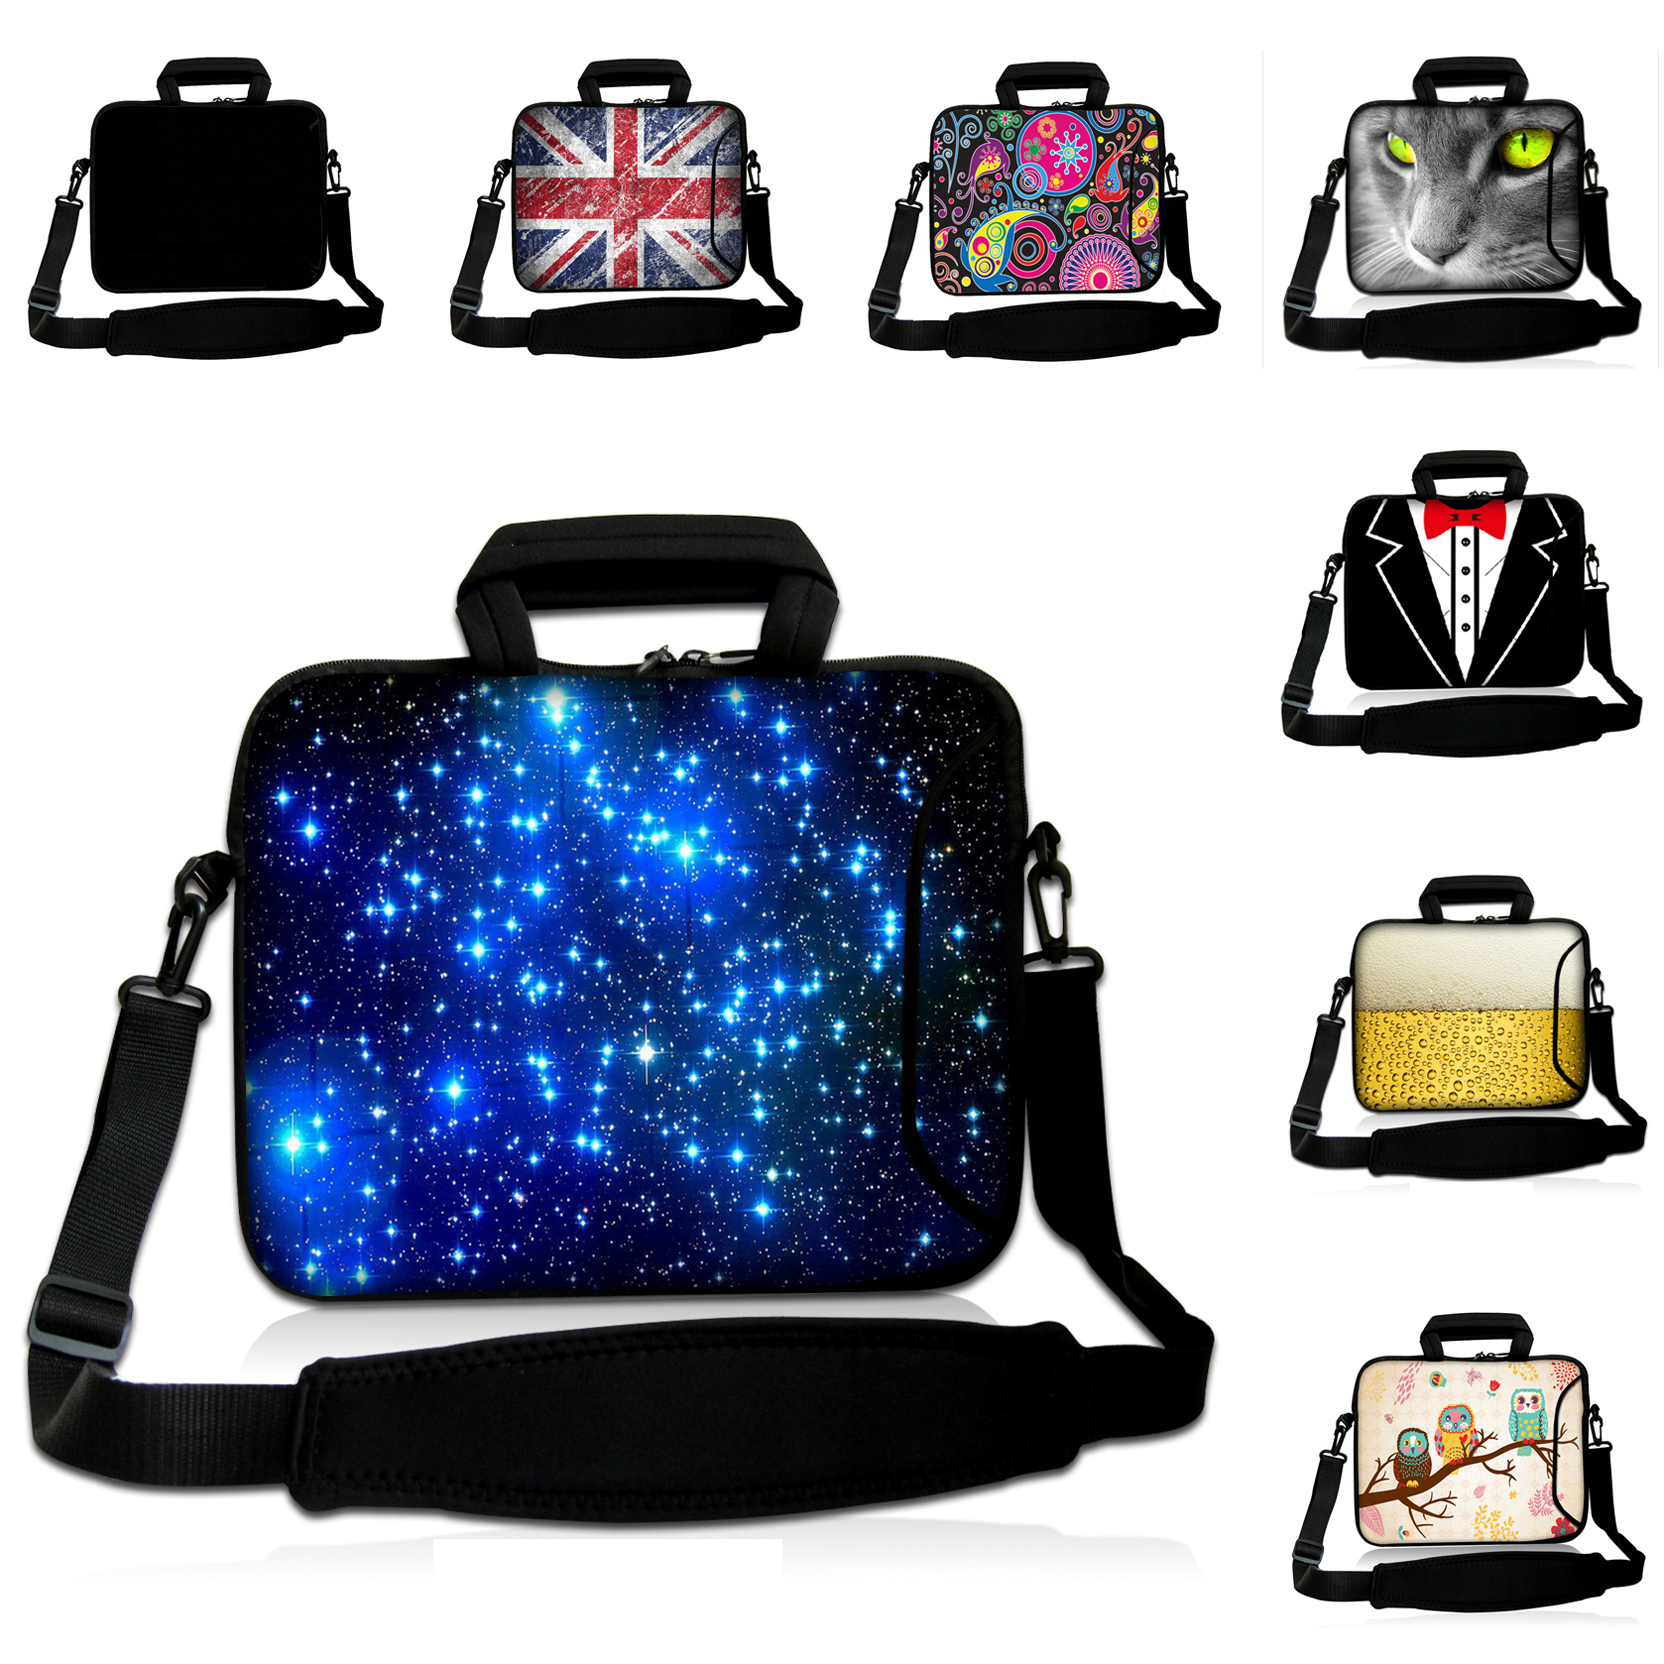 f2c5c6a60712 14 12 13 10 17 15 9.7 10.1 15.6 Inch Laptop Sleeve Cases New Messenger  Notebook